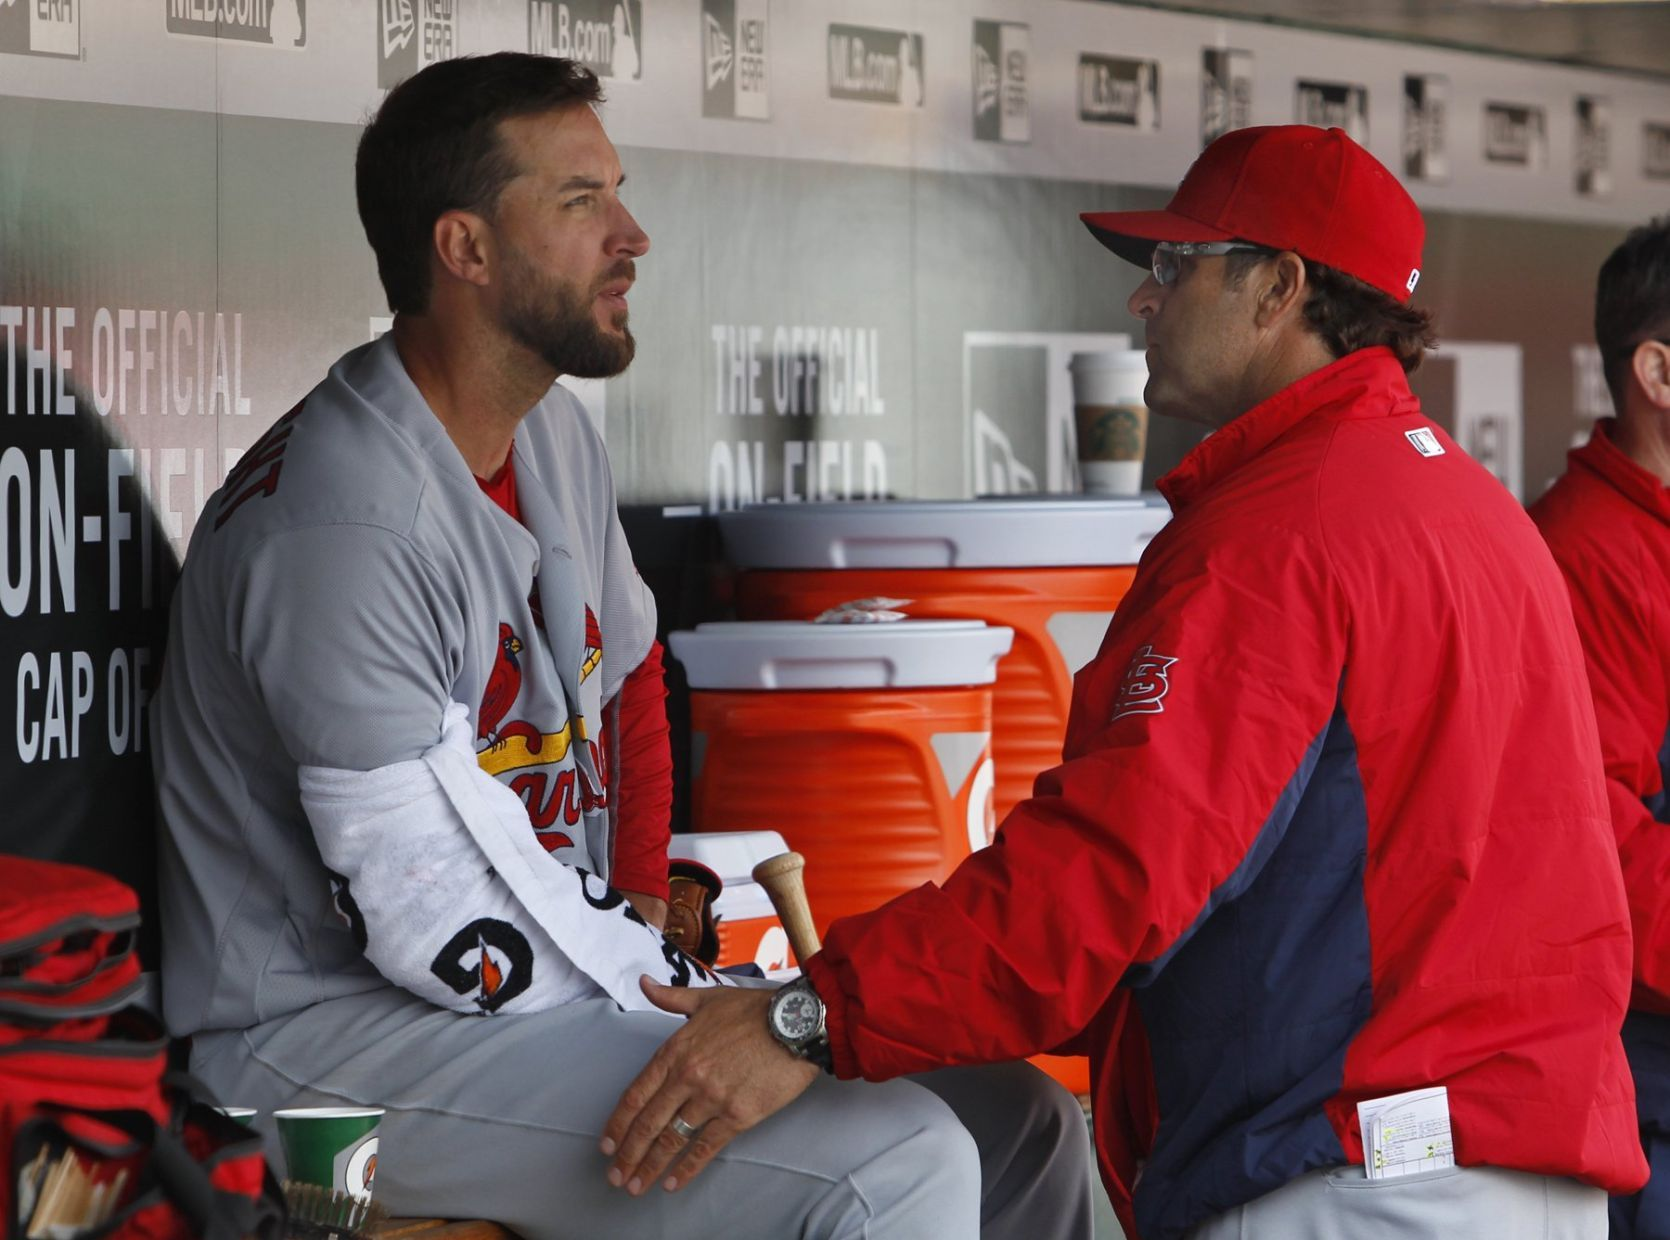 Power-mad Cardinals look to back Wainwright